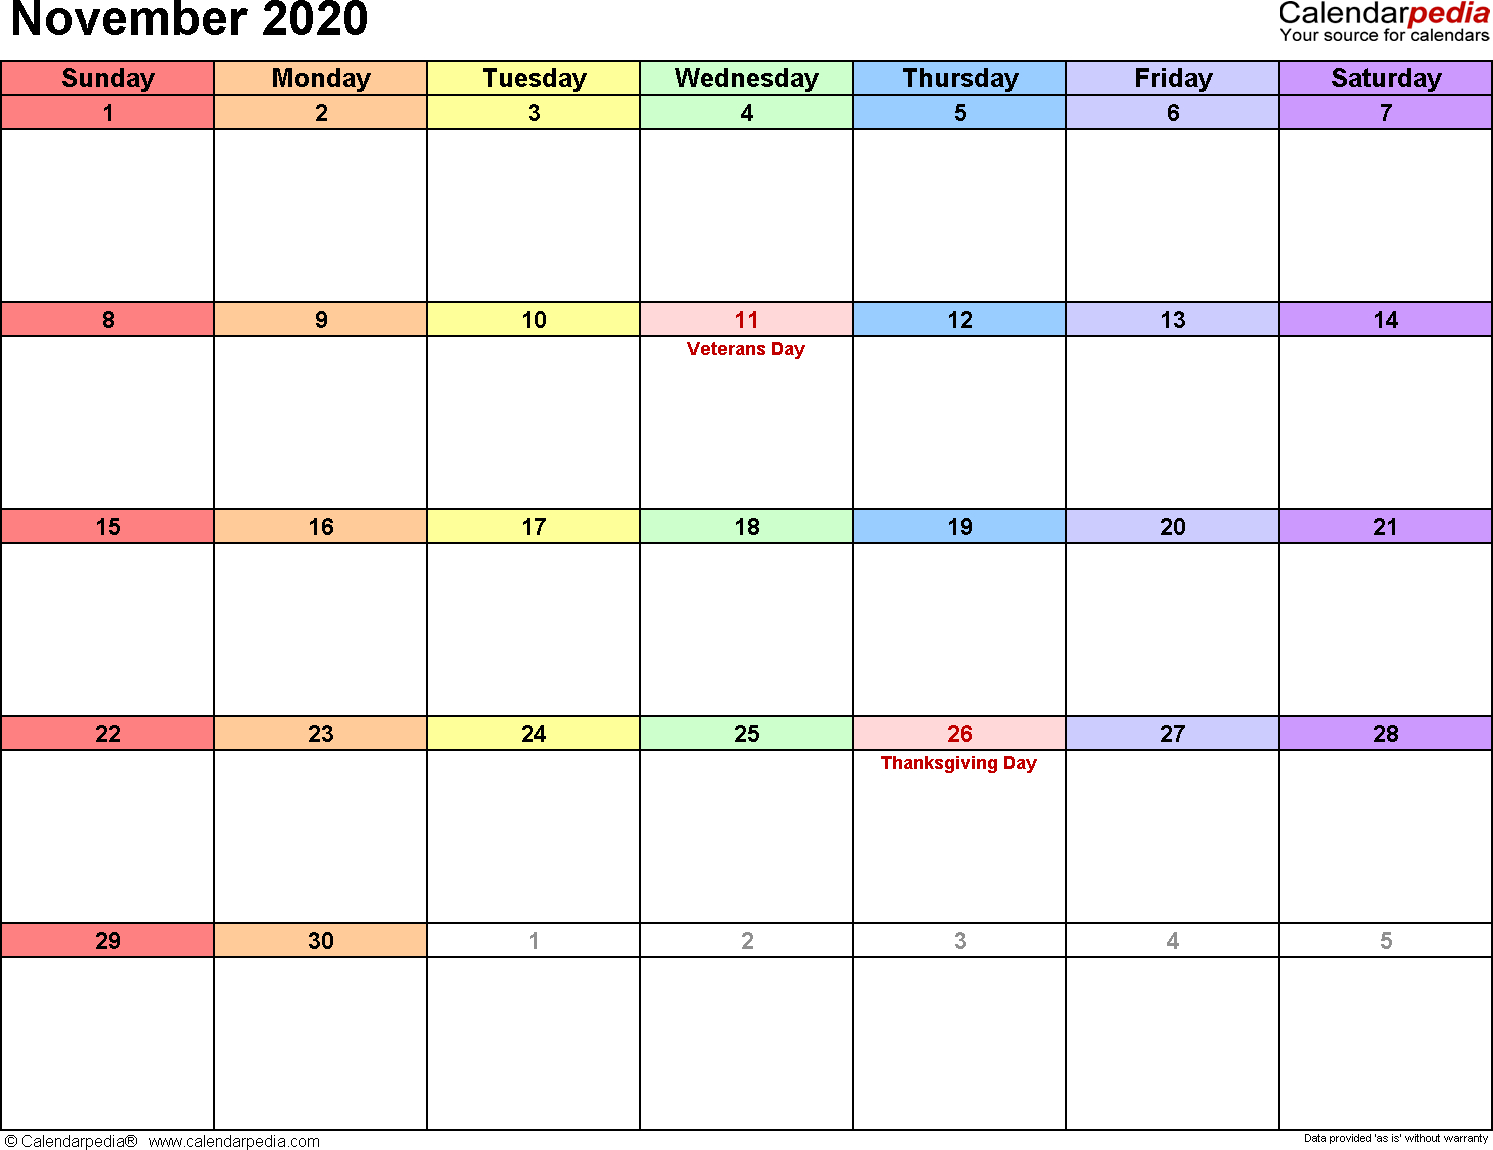 November 2020 Calendar Template  Bolan.horizonconsulting.co for November 2020 Calendar Excel